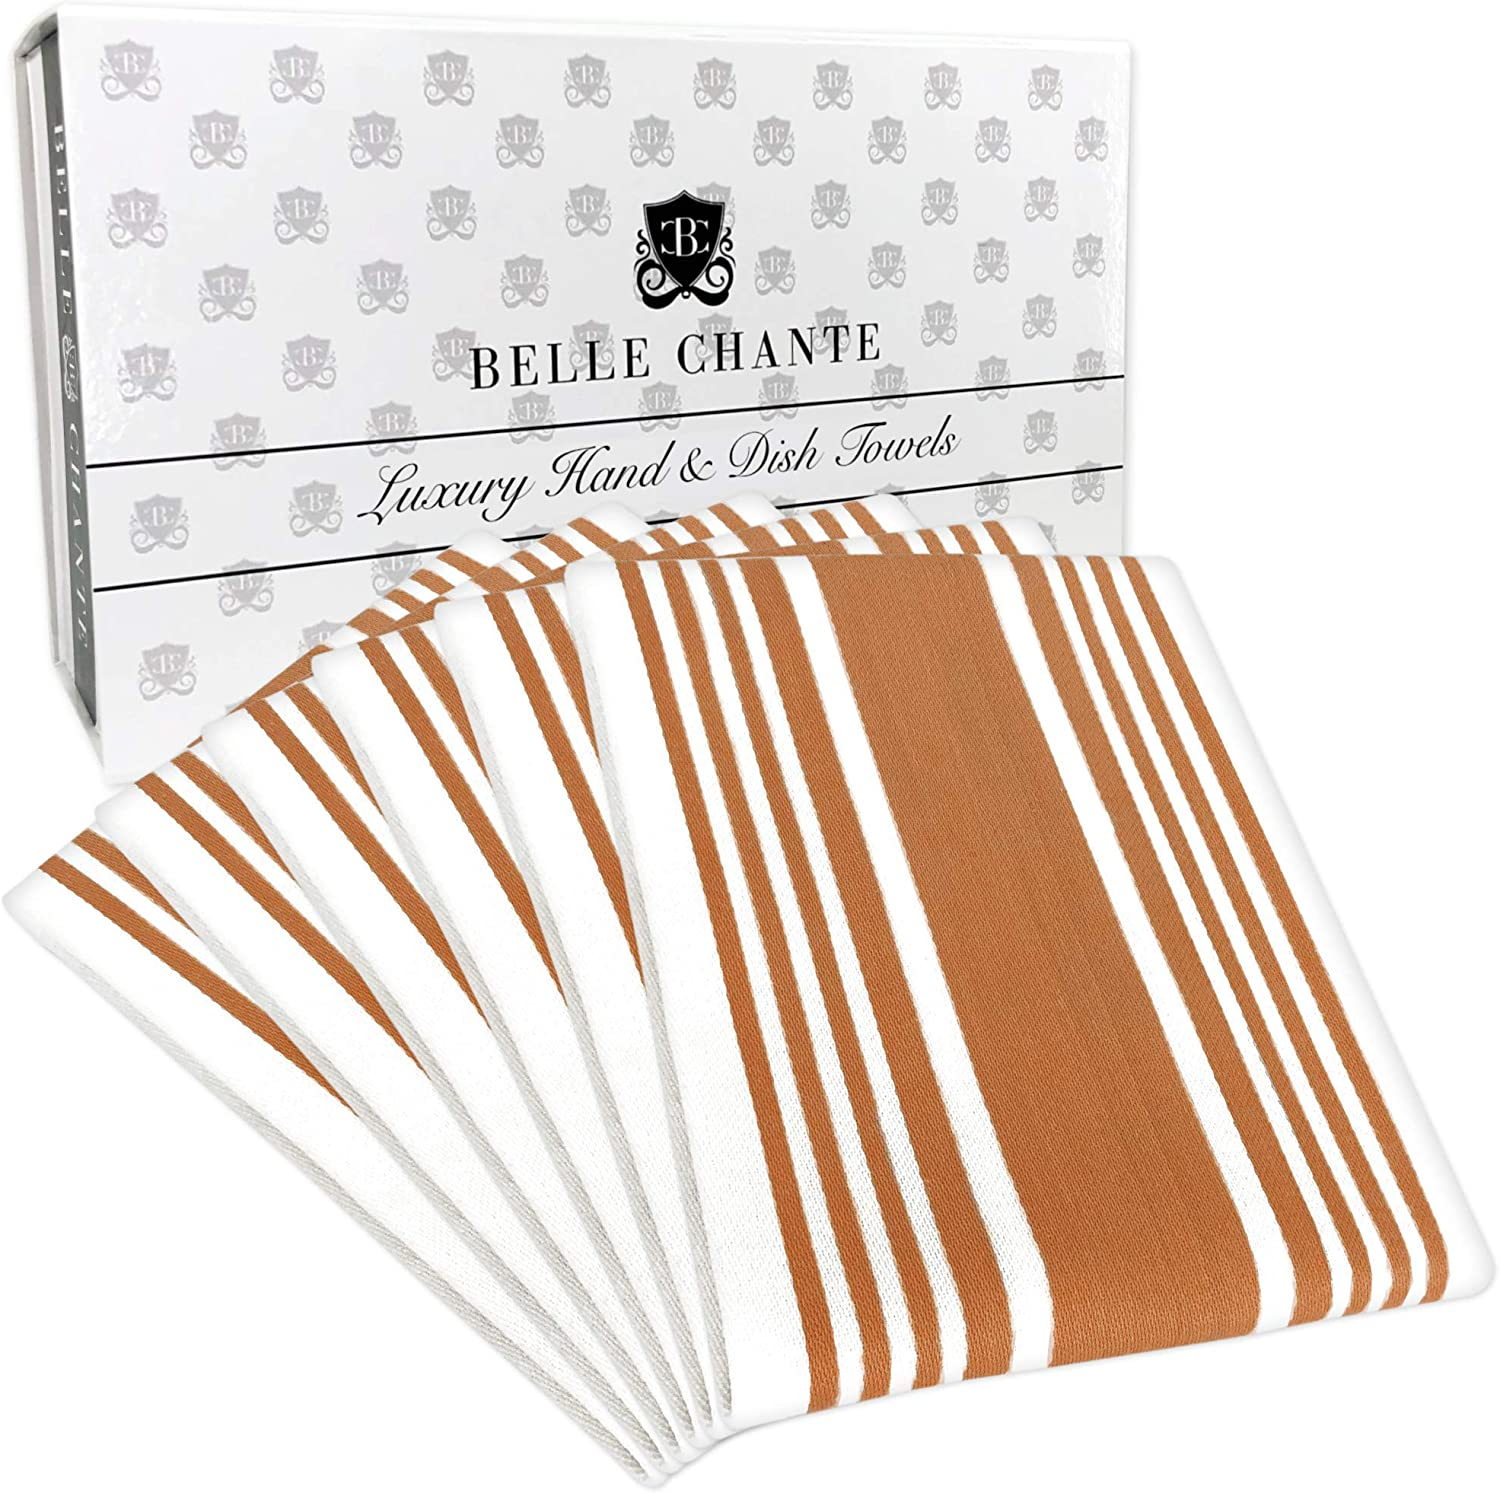 BELLE CHANTE Luxury Hand and Kitchen Dish Towels Woven from 100% Responsibly-Farmed, Thick, Luxurious Cotton, Oversized 20 x 30 inches, One Half Dozen, Copper Stripe